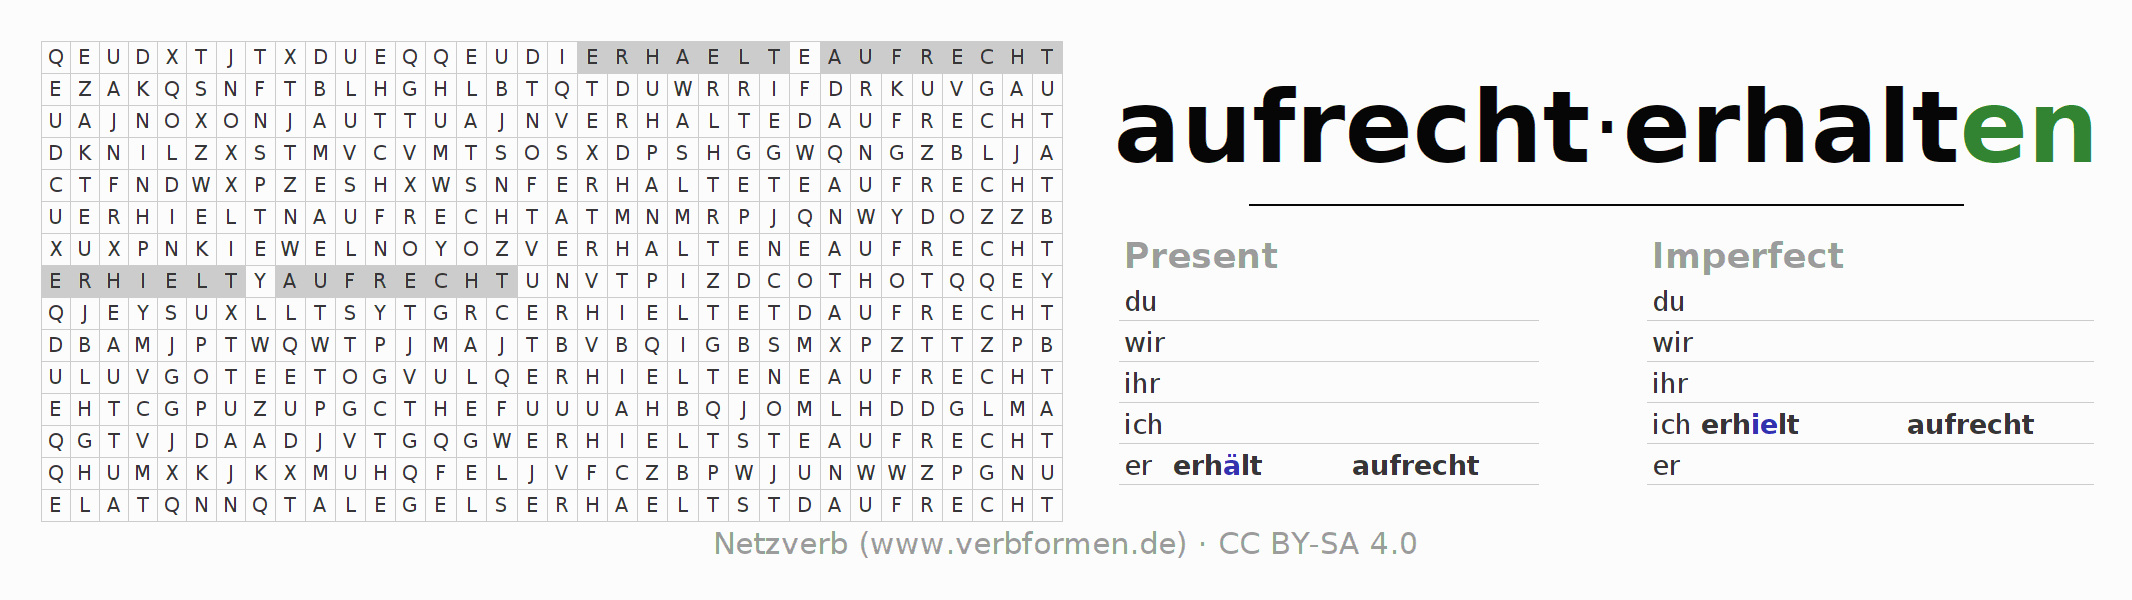 Word search puzzle for the conjugation of the verb aufrechterhalten